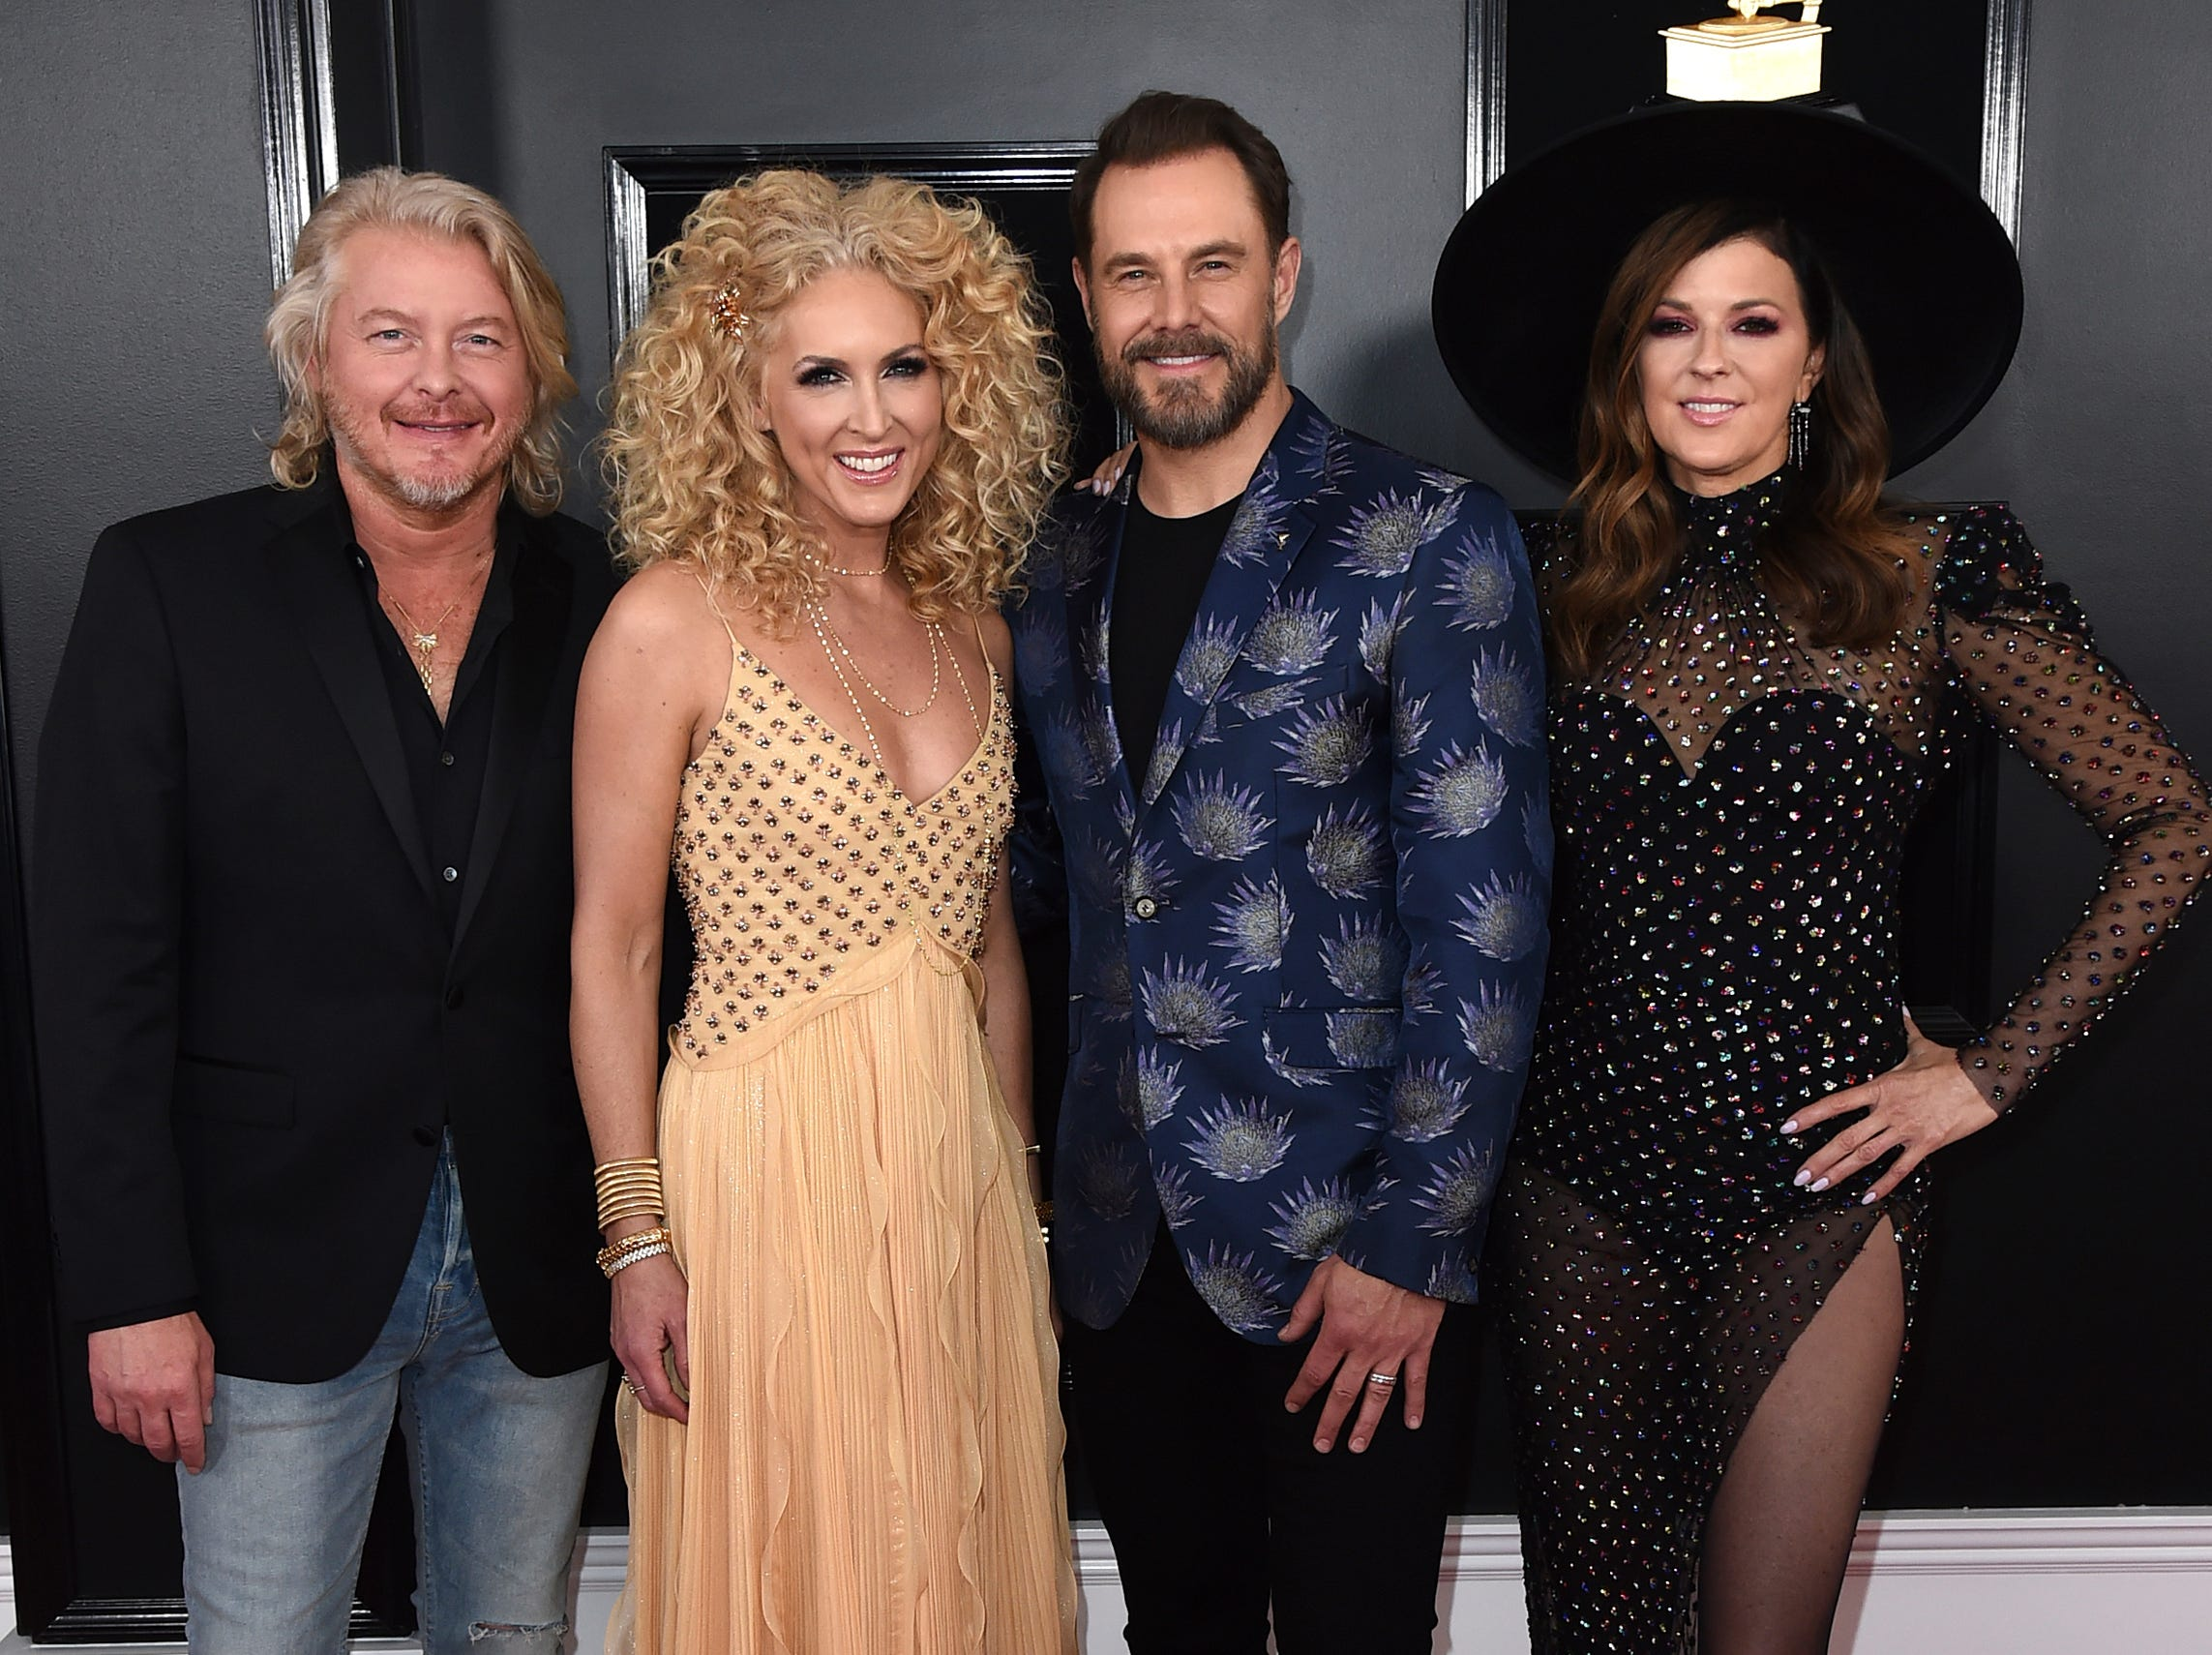 Philip Sweet, from left, Kimberly Schlapman, Jimi Westbrook, and Karen Fairchild of Little Big Town arrive at the 61st annual Grammy Awards.